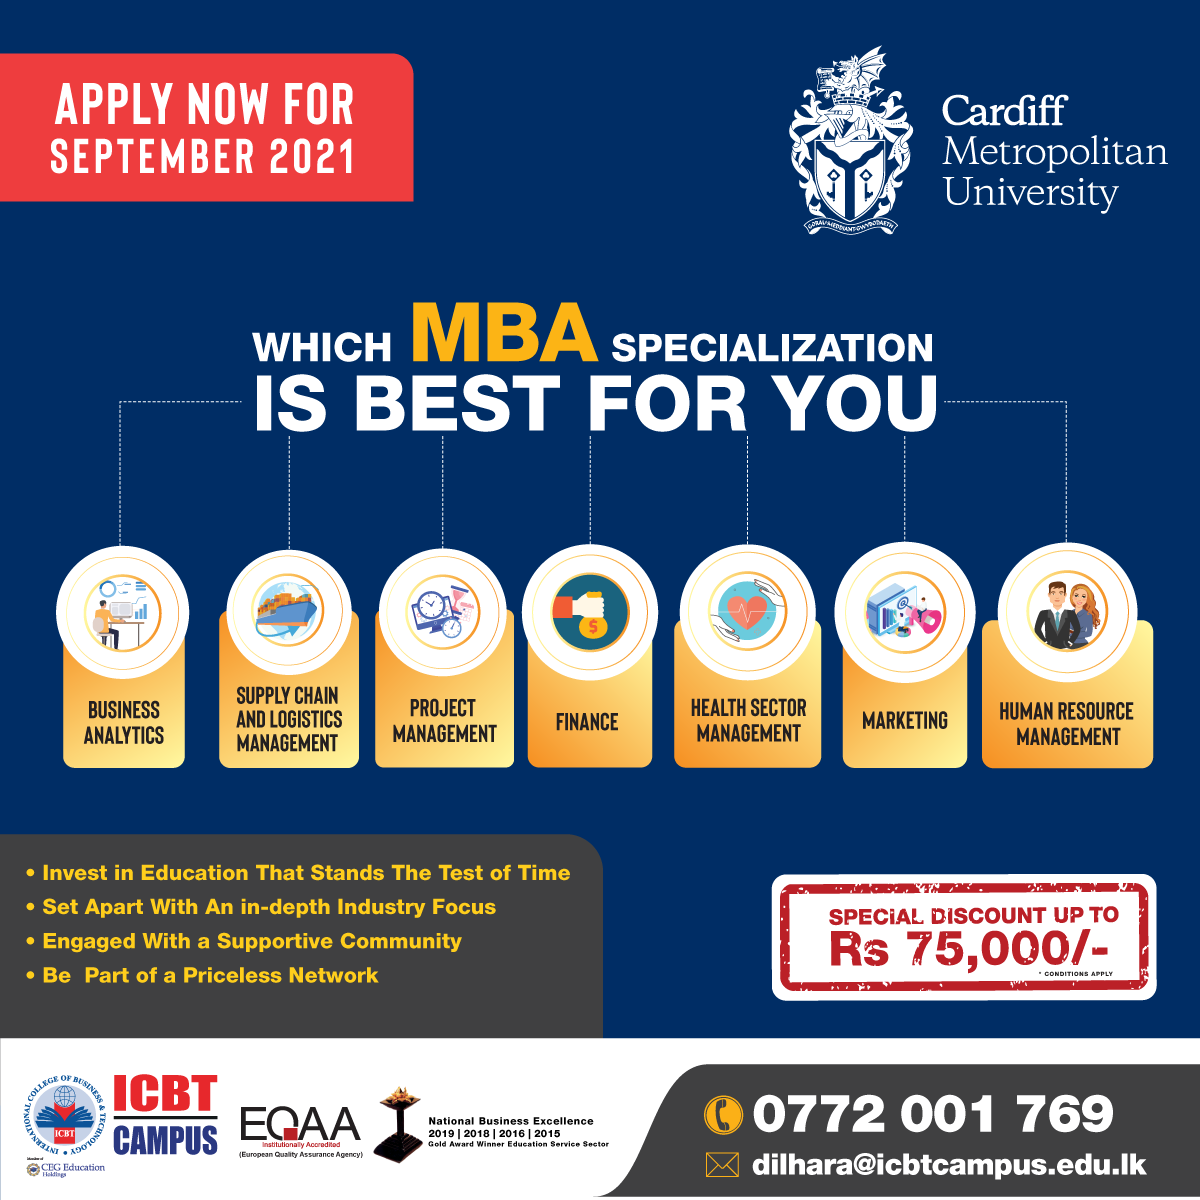 Transform Yourself with Cardiff Met - MBA